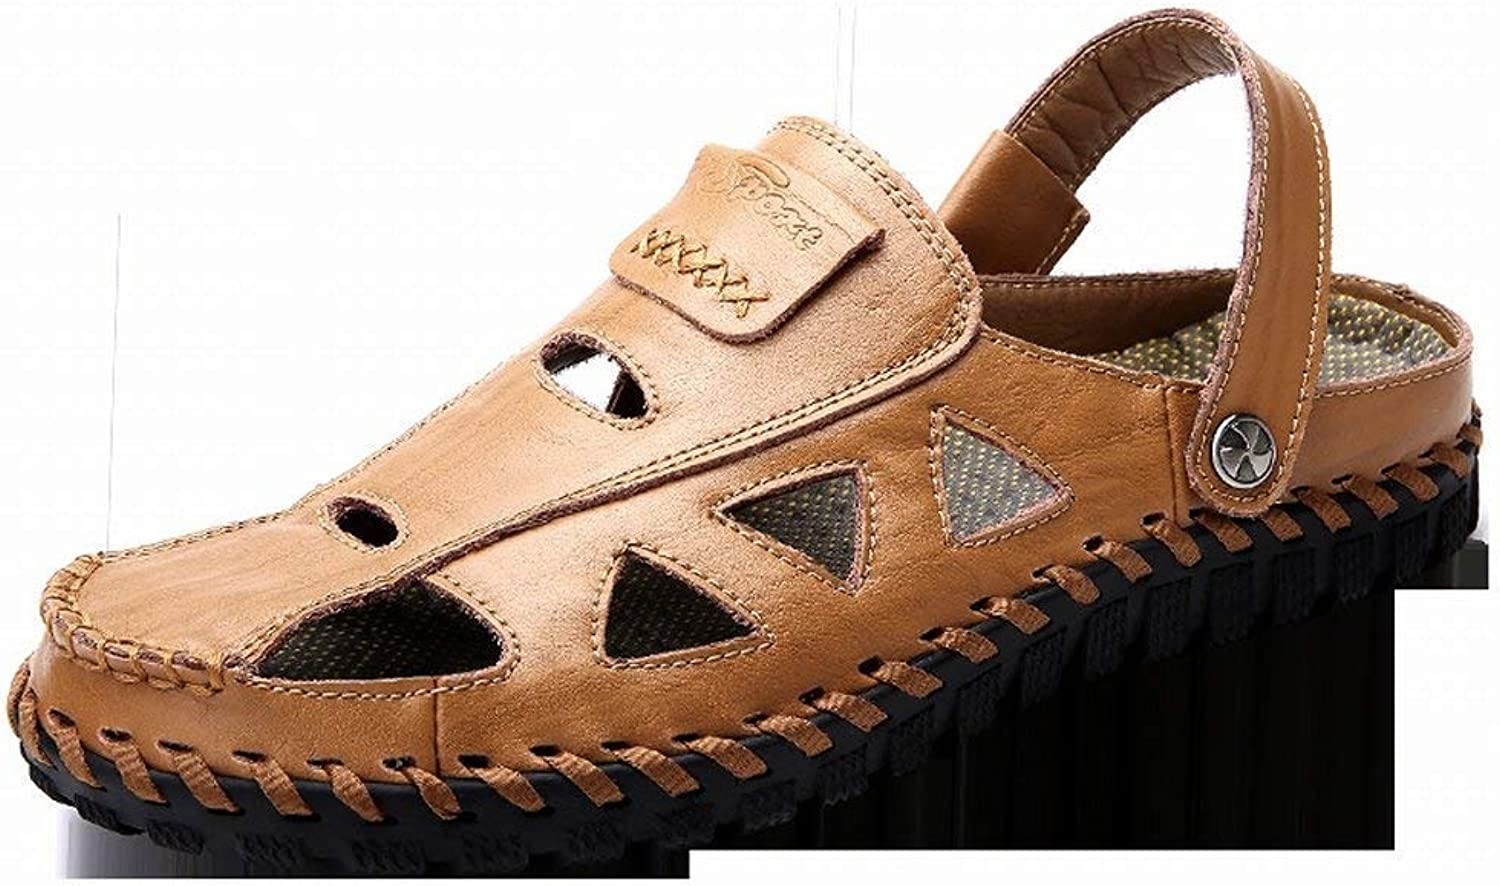 Fuxitoggo Fashion Handsewn Sandals Soft Leather Casual Men's shoes Men's shoes (color   Yellow, Size   39)